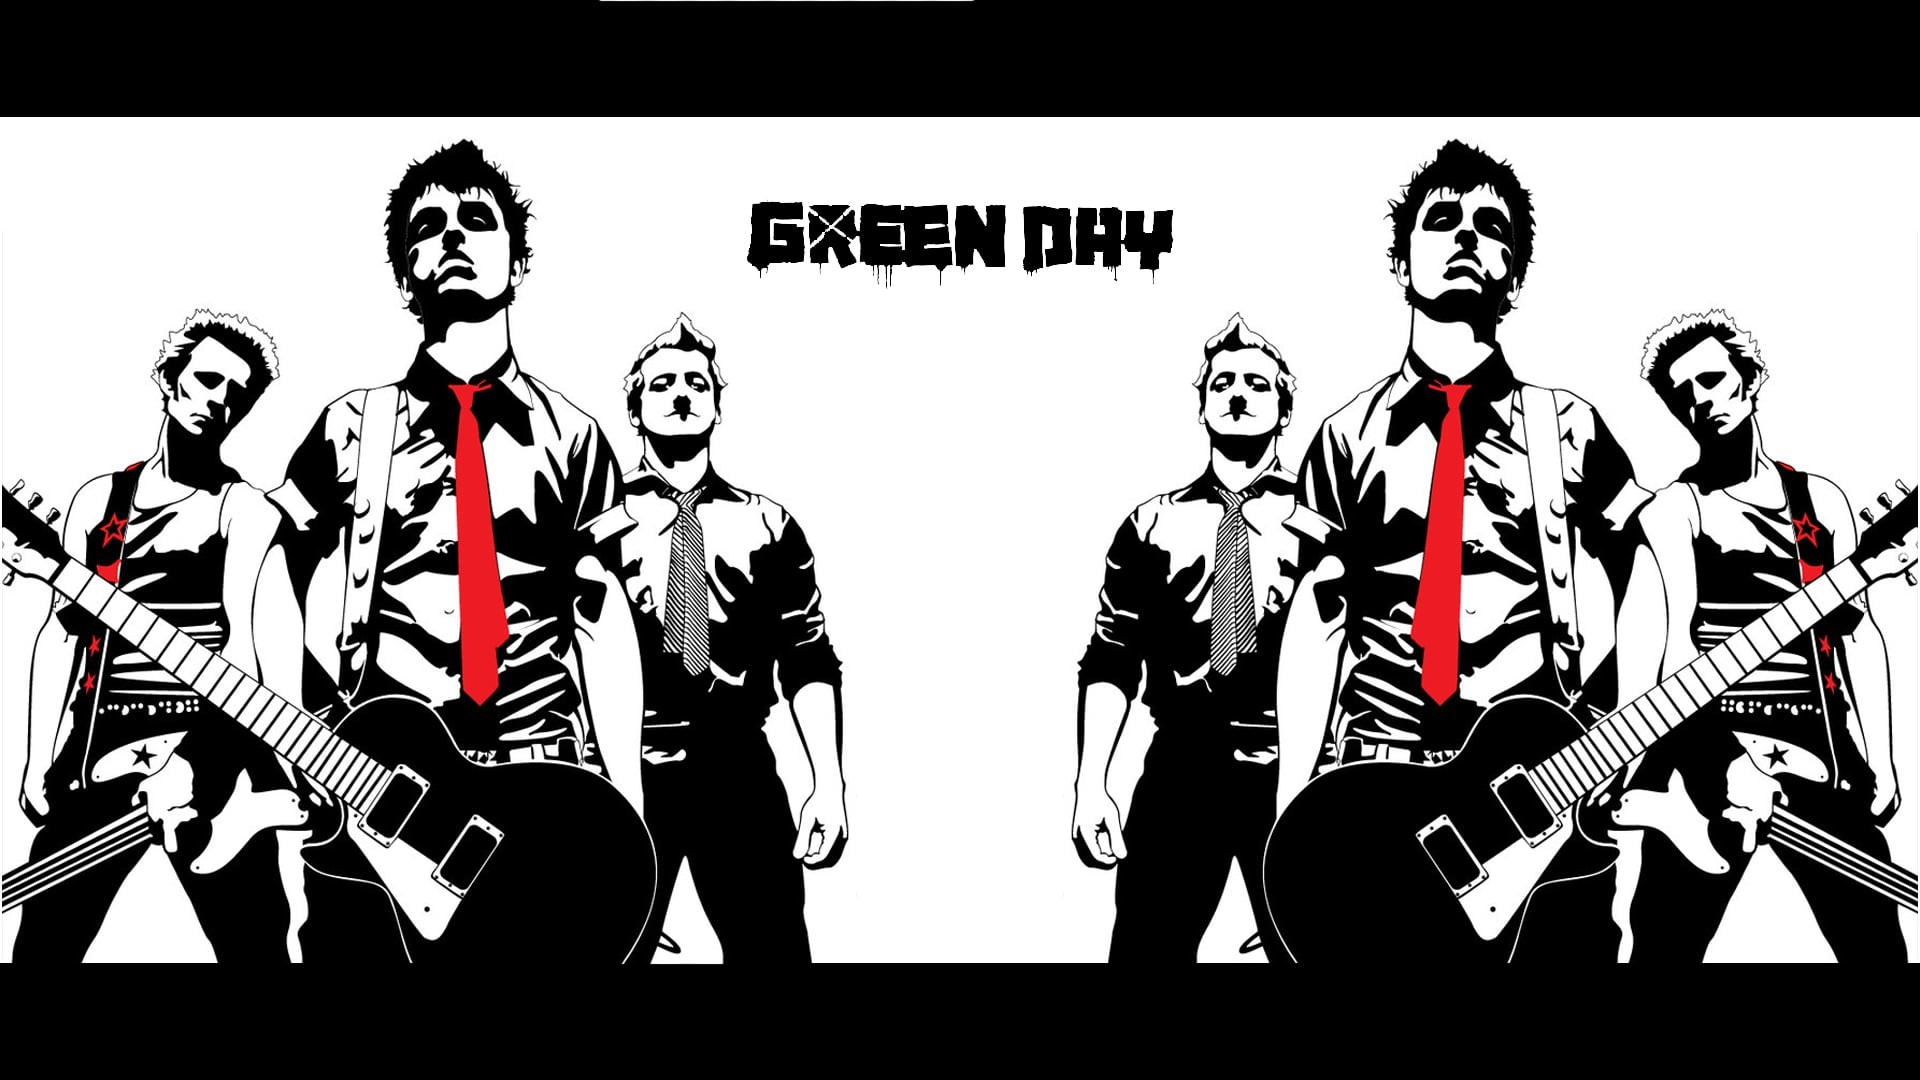 1920x1080 Green Day Backgrounds Green Day Wallpaper